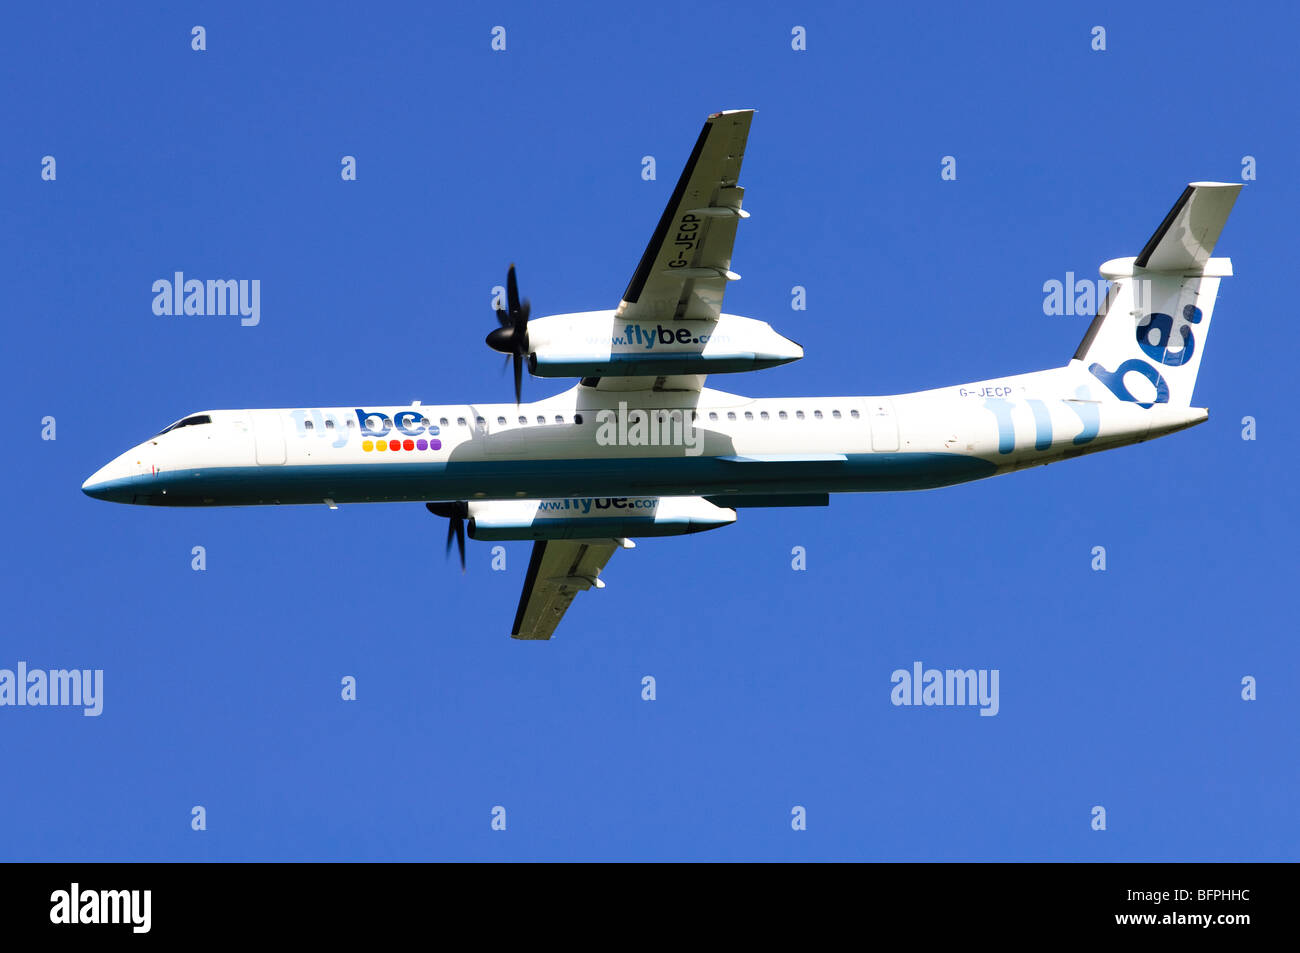 Bombardier Dash 8 operated by Flybe banking after take off from Birmgham Airport, UK. - Stock Image